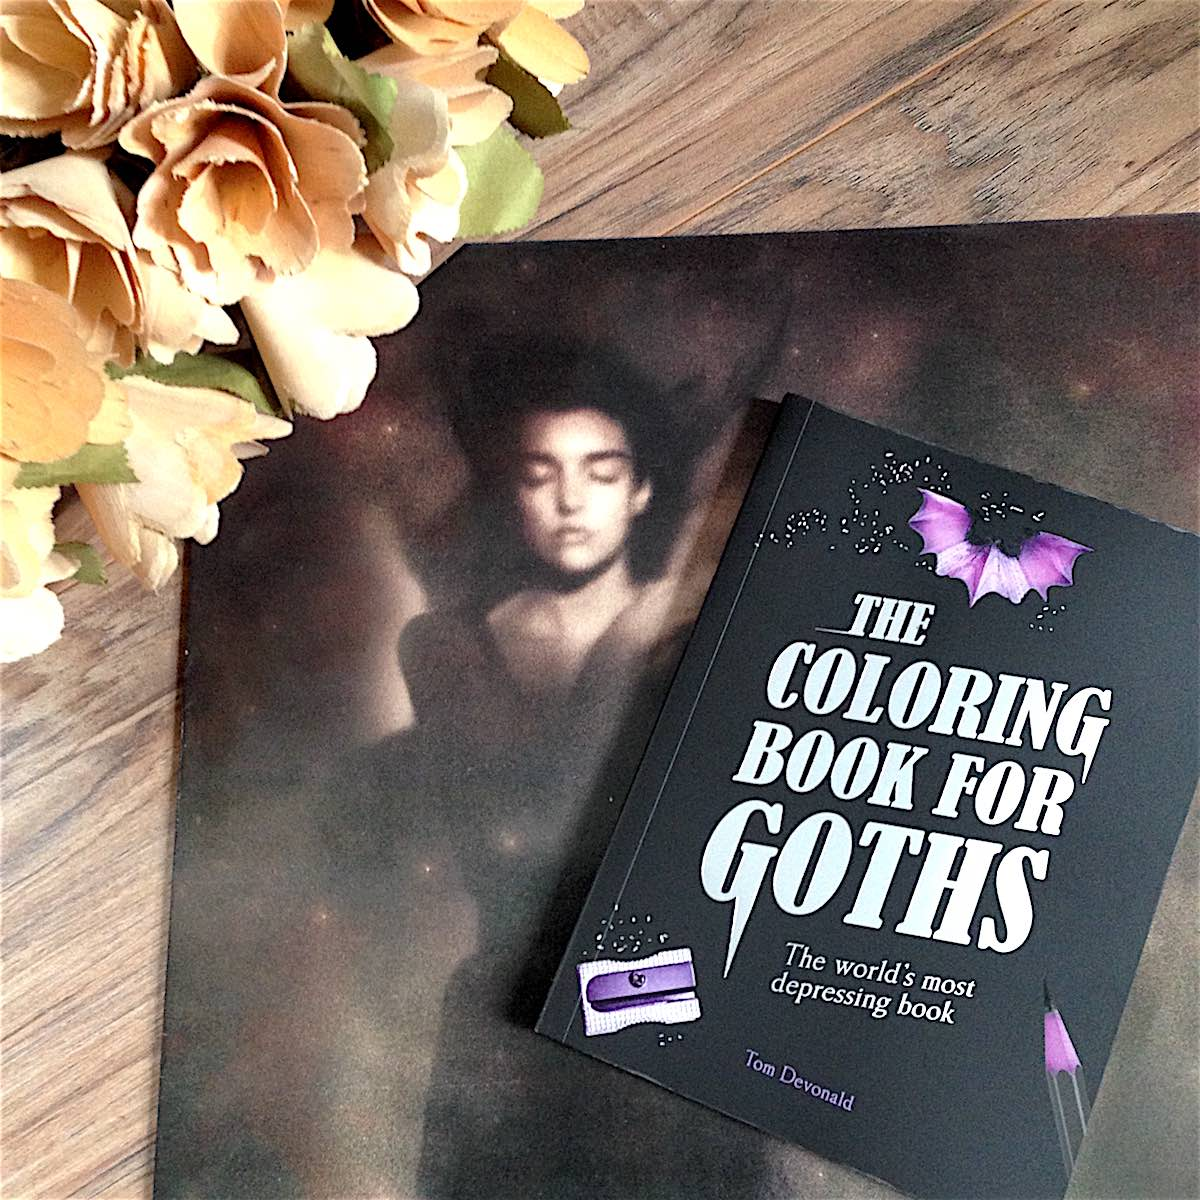 The Coloring Book For Goths  Because Goths (and Former Goths) Can